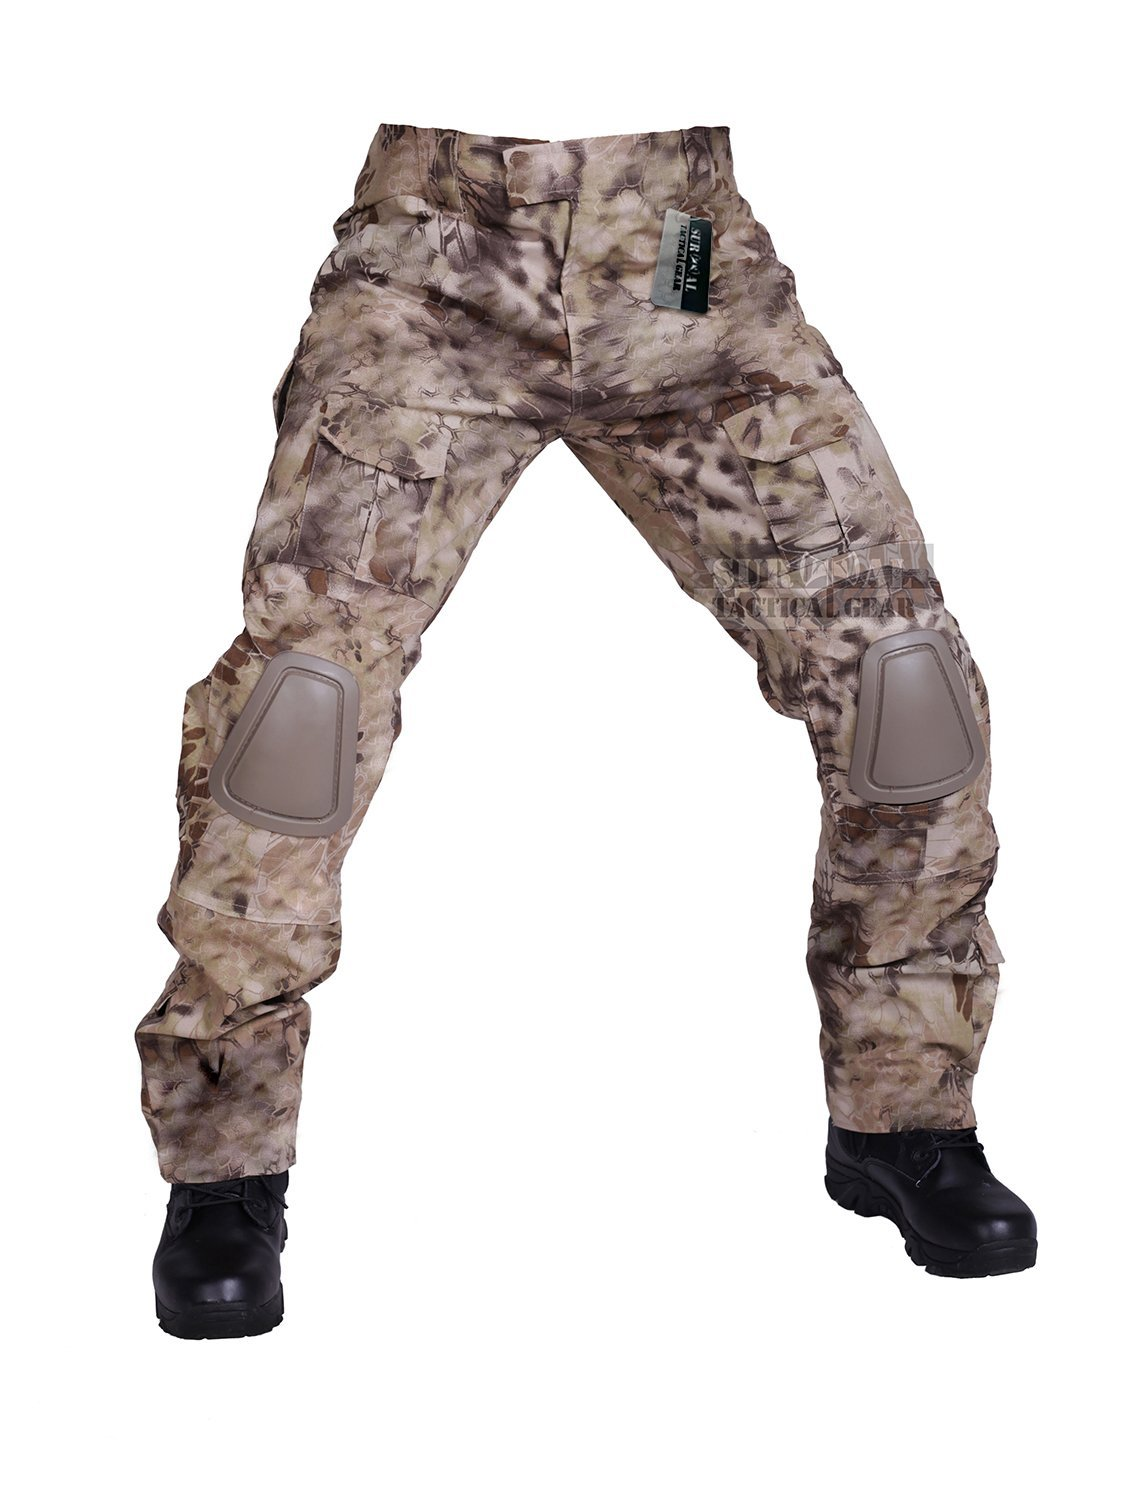 ZAPT Tactical Pants with Knee Pads Airsoft Camping Hiking Hunting BDU Ripstop Combat Pants 13 Kinds Army Camo Uniform Military Trousers (Nomad Camo, XL38) by ZAPT